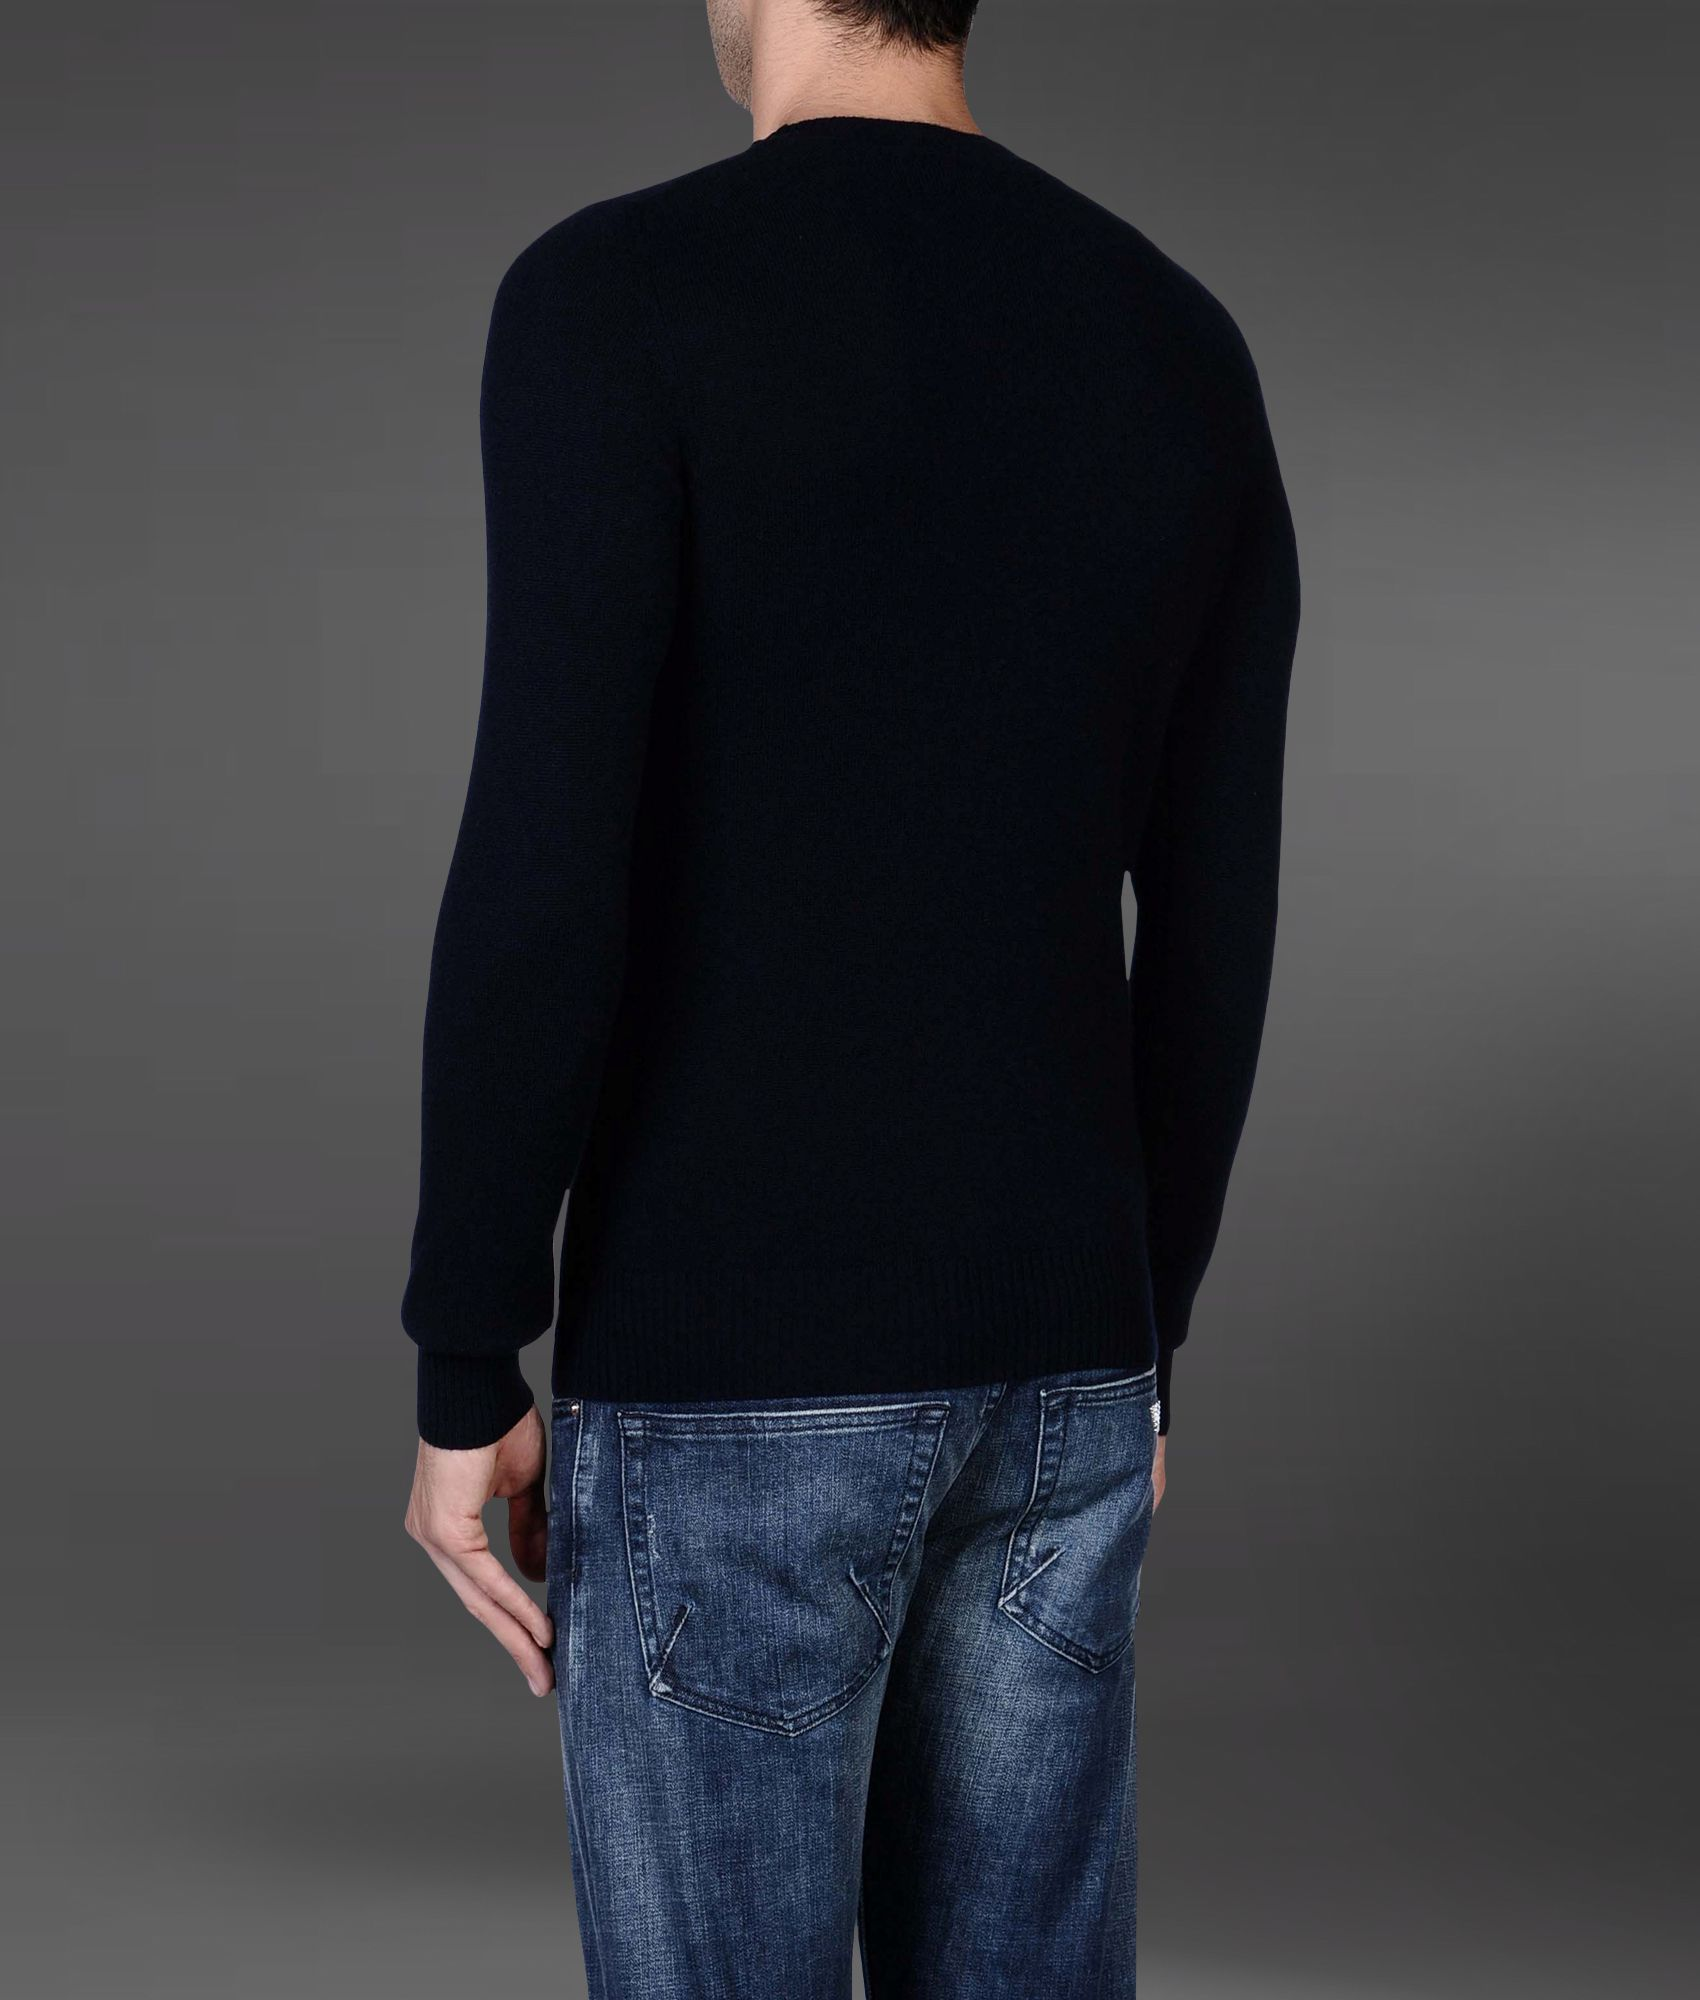 emporio armani sweater in cashmere in blue for men lyst. Black Bedroom Furniture Sets. Home Design Ideas